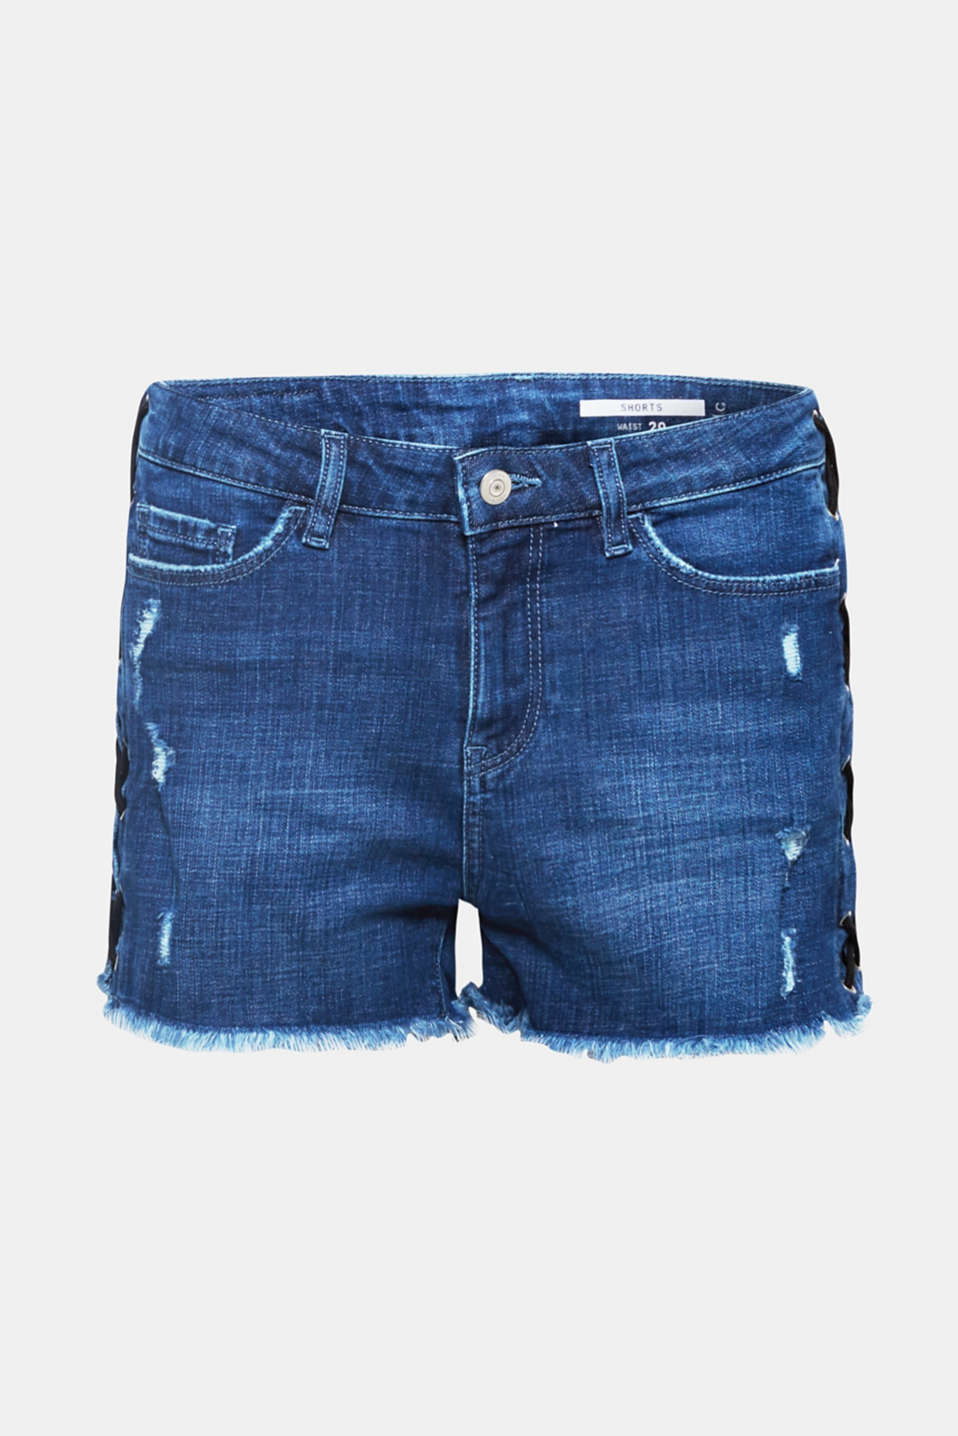 A trend piece! Distinctive lacing on the side seam gives these denim shorts their stylish look.